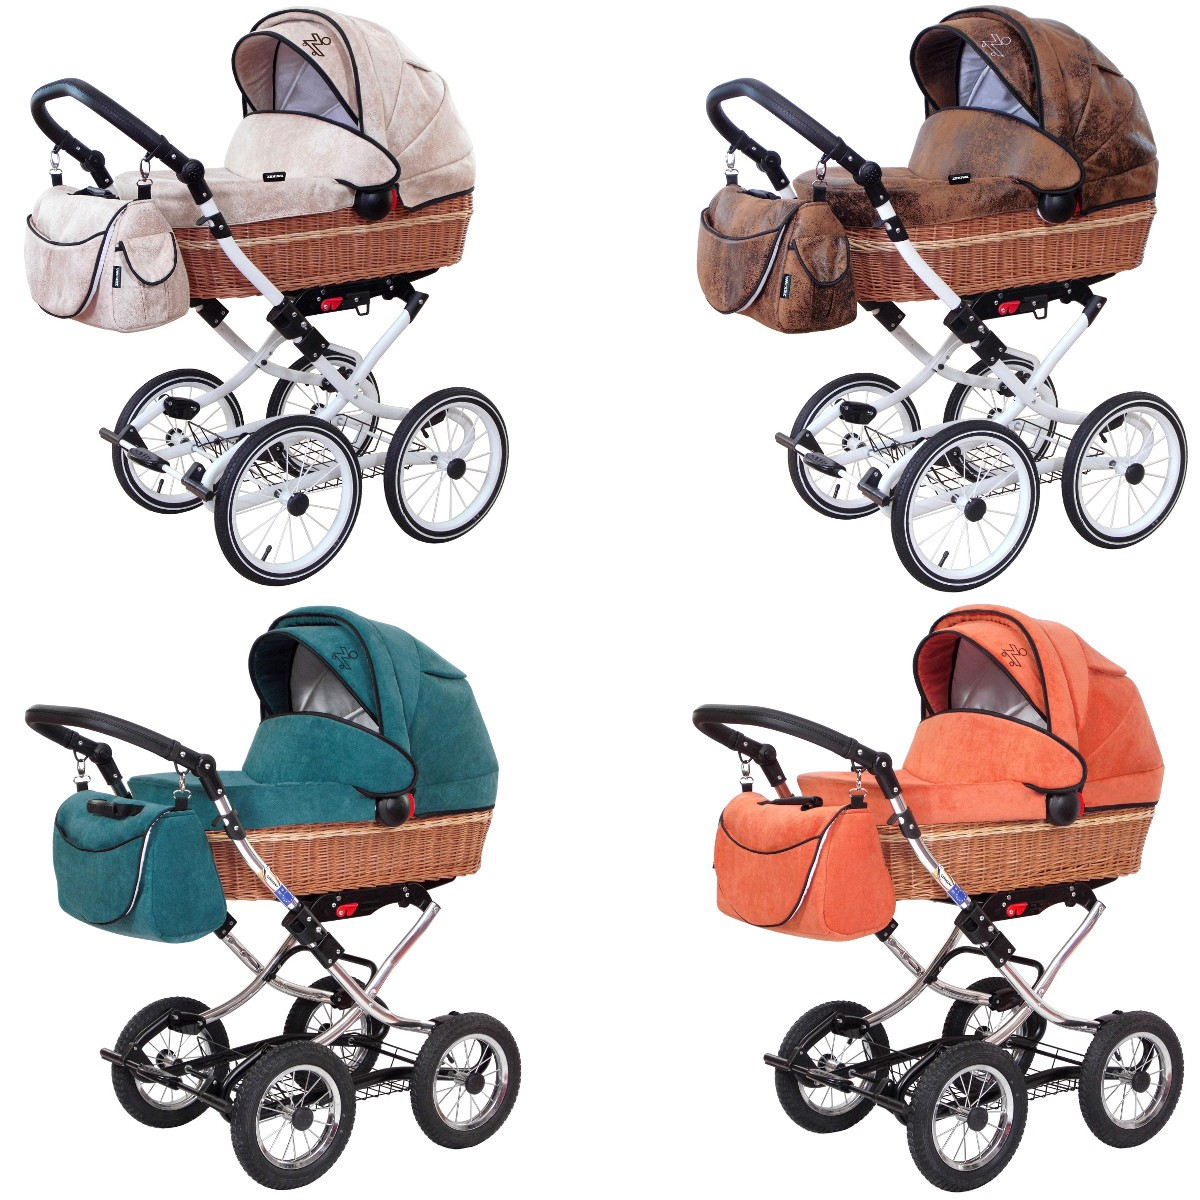 zekiwa retro kinderwagen nature konfigurierbar mit wanne oder als 2in1 mit babywanne. Black Bedroom Furniture Sets. Home Design Ideas